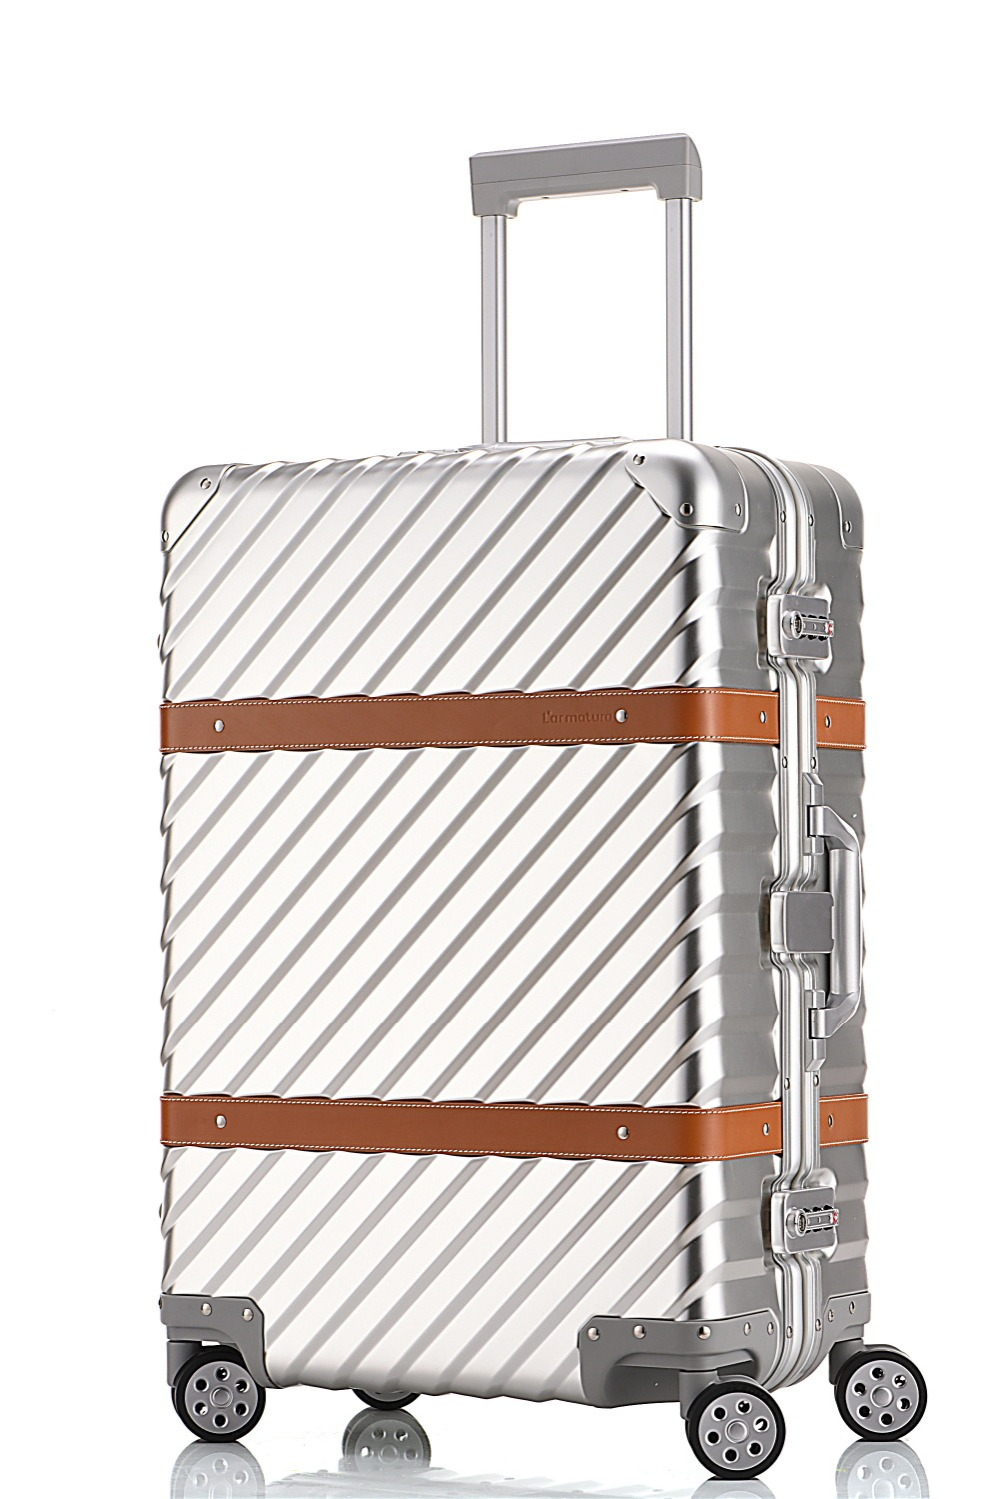 28 inches inclined stripe aluminium magnesium alloy rod box vintage suitcase metal box with leather luggage female board VERRY free shipping 100% aluminium luggage magnesium alloy luggage universal wheel lockbox metal box men and women on board boxes